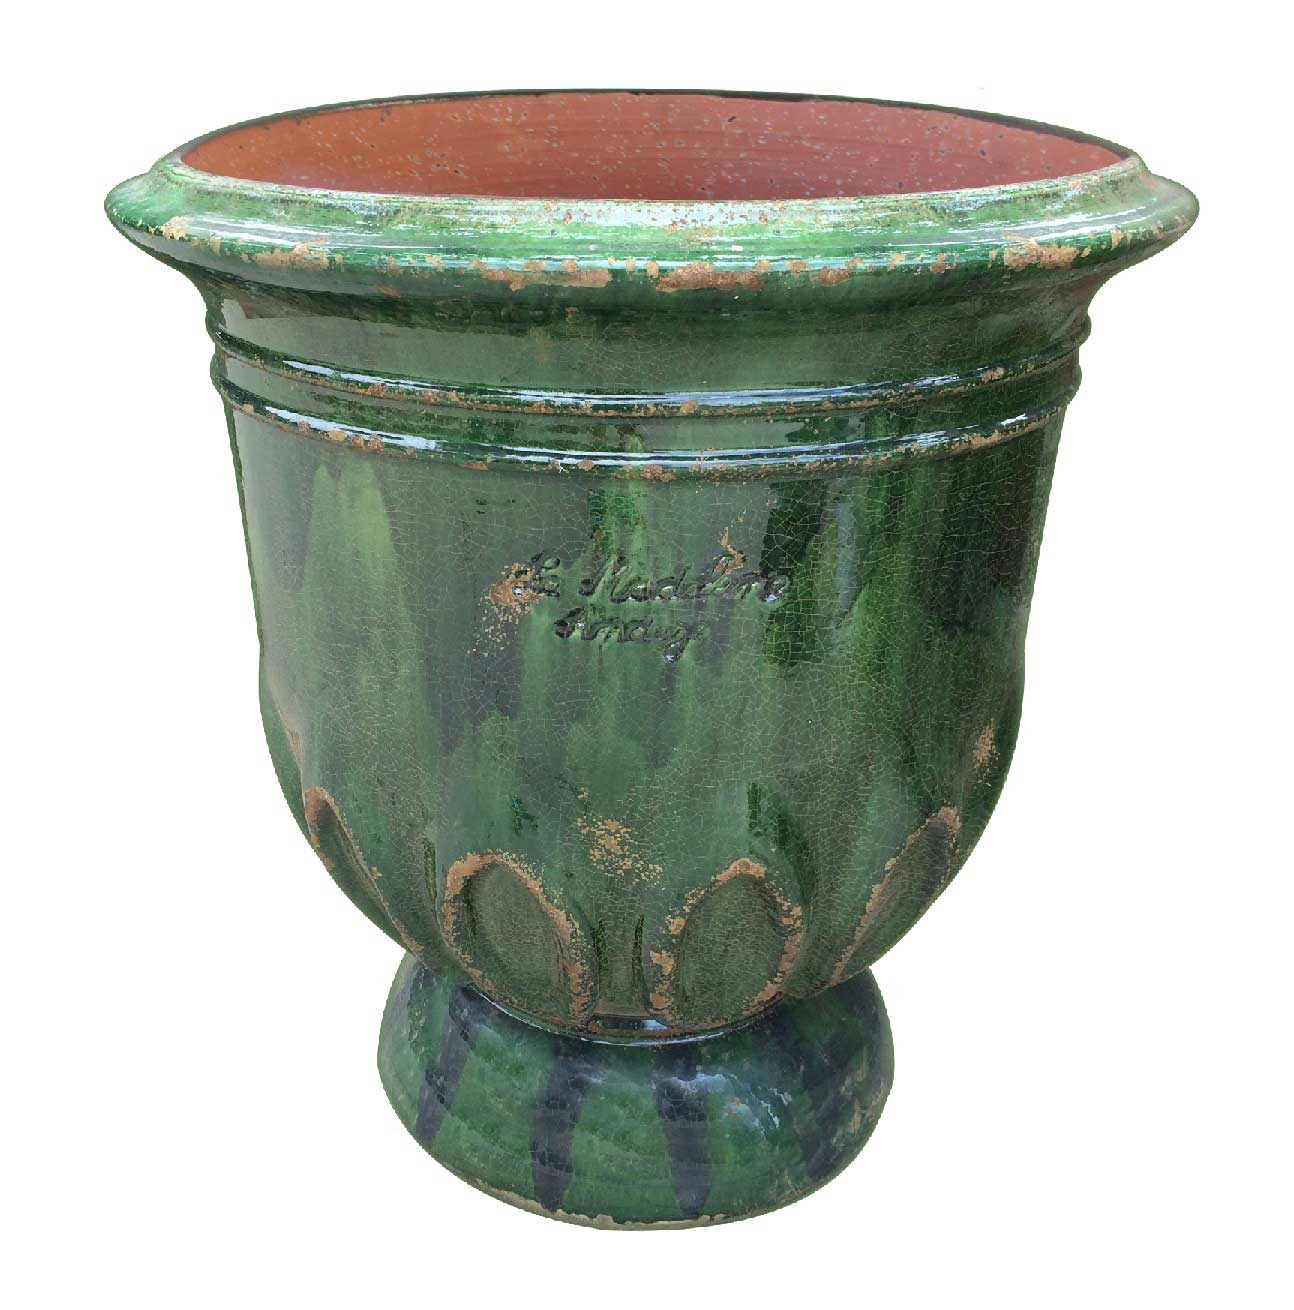 Fench Anduze Tulip Vase in Aged Green